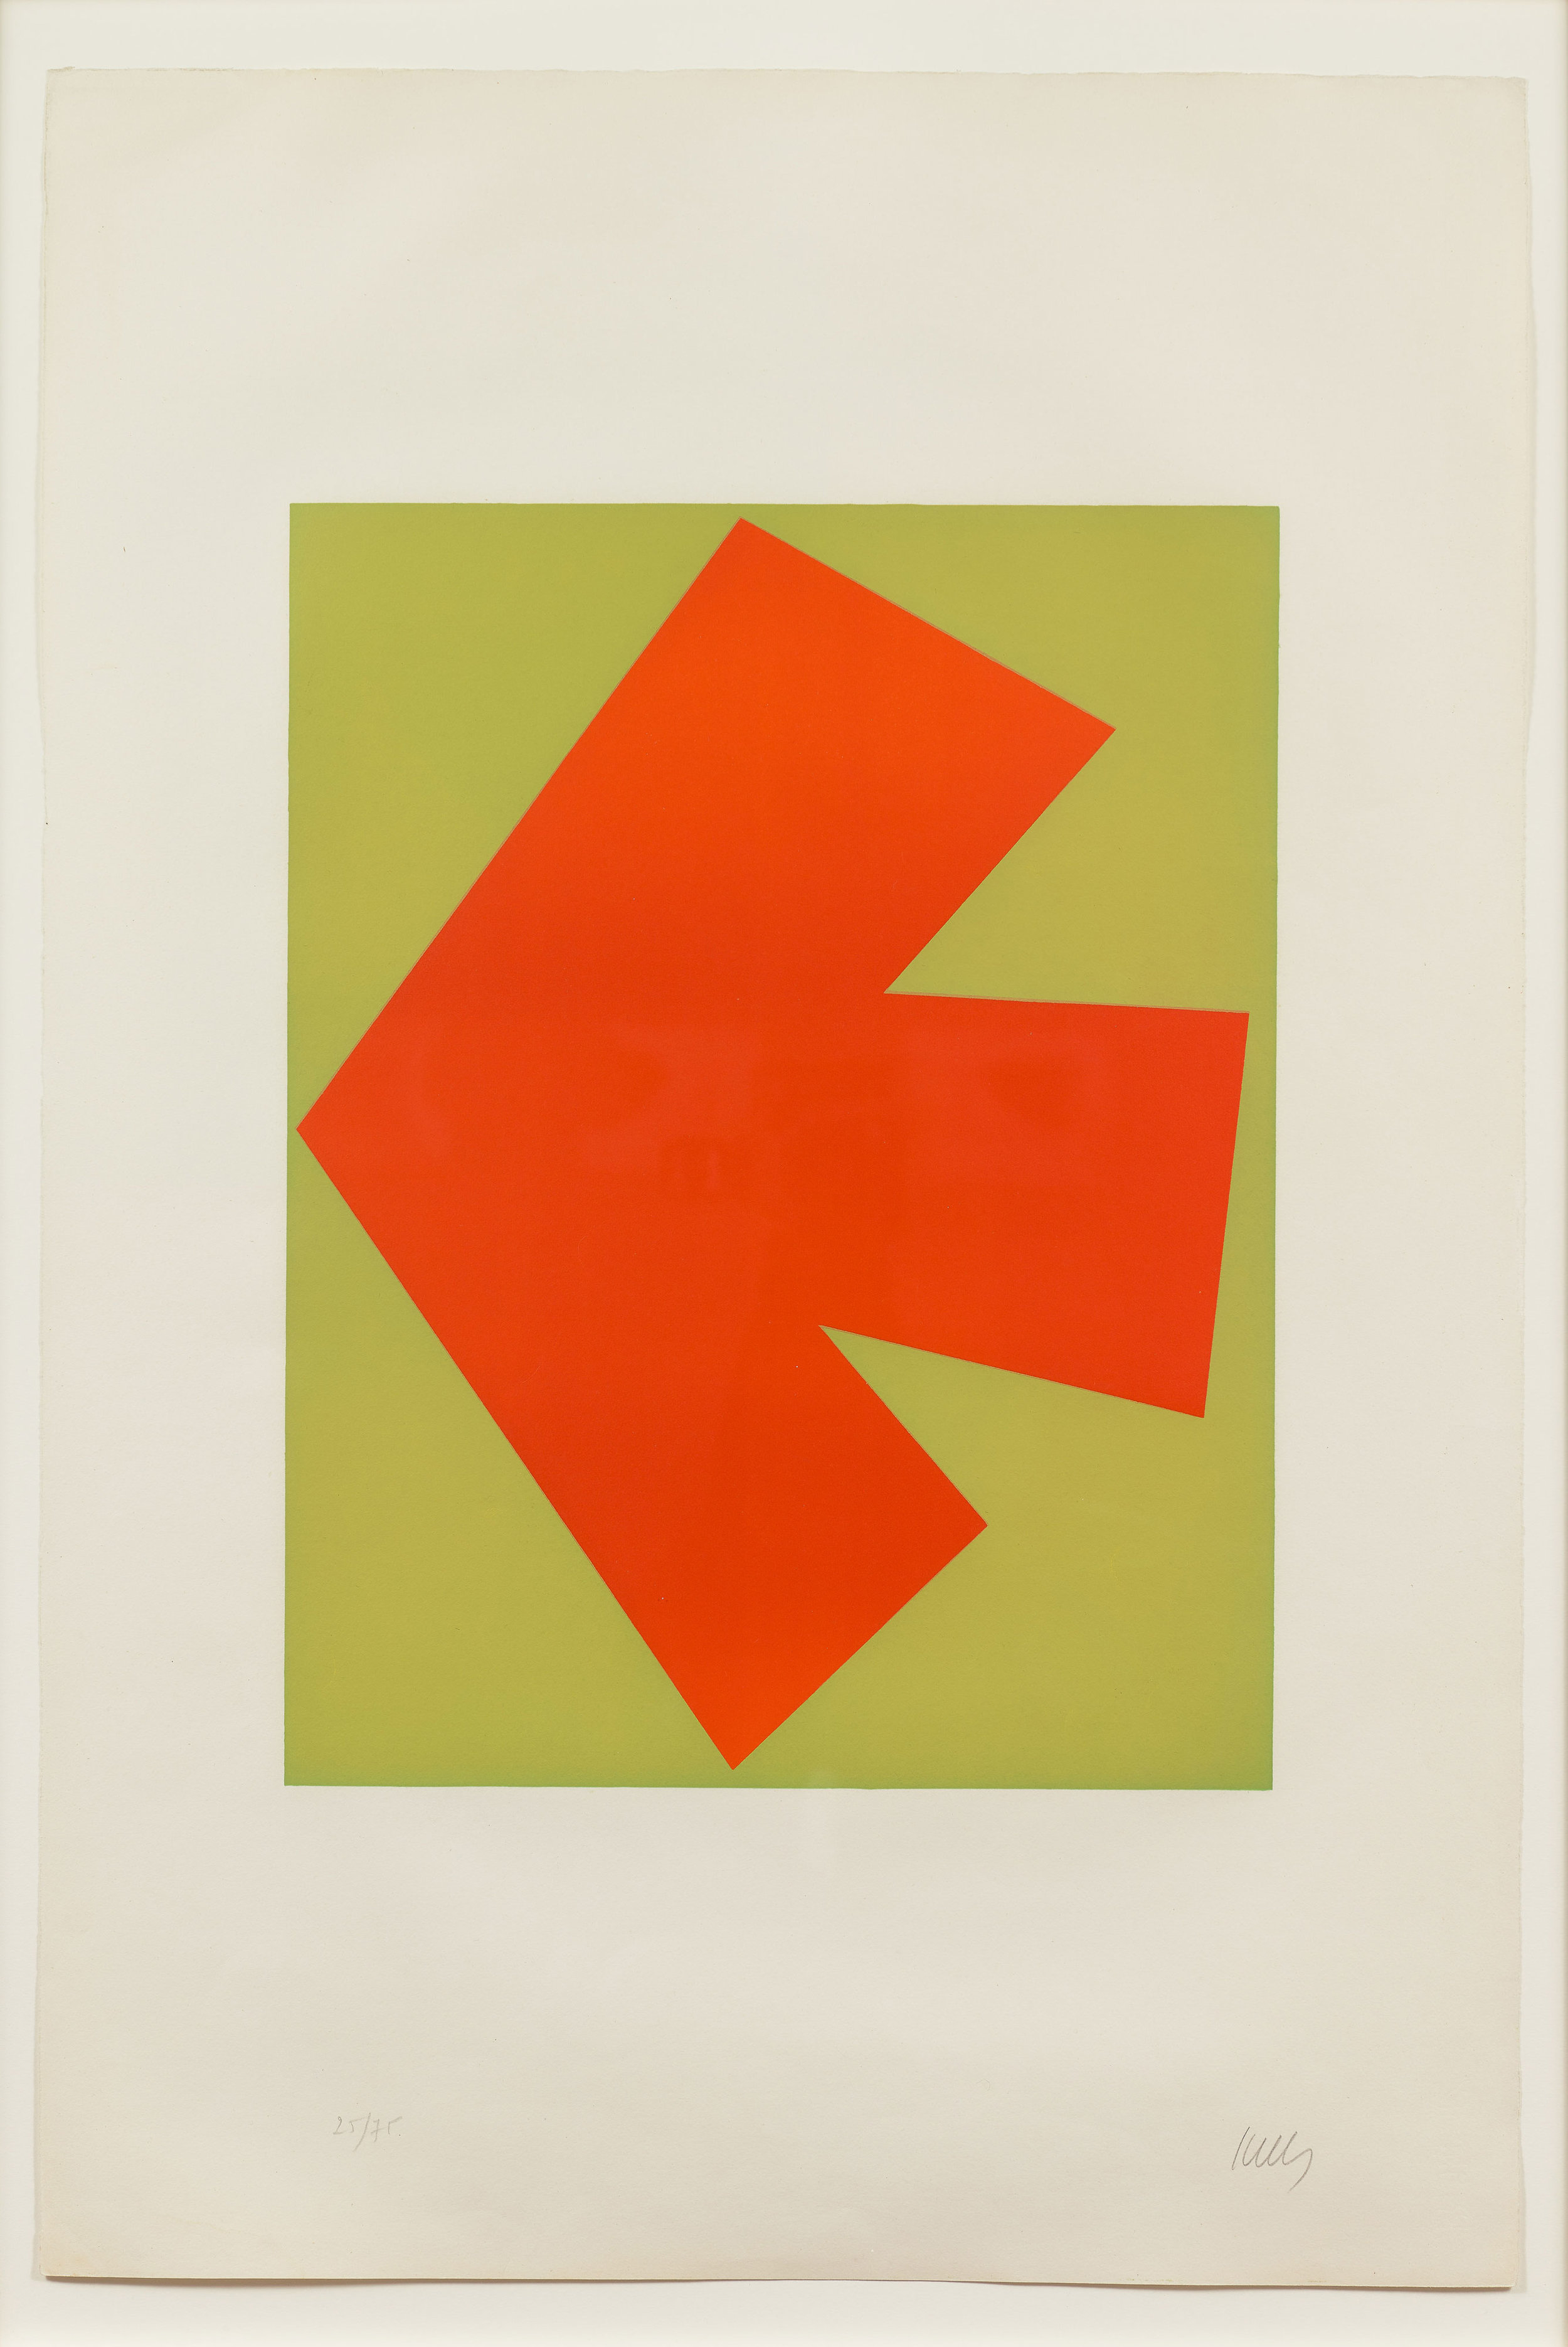 Ellsworth Kelly  (1923-2015)  Orange Over Green (Orange sur Vert), from the Suite of Twenty-Seven Color Lithographs , 1964 Lithograph in colors on Rives BFK paper, with full margins Plate: 20 3/8 x 15 5/8 inches Sheet: 35 x 23 5/8 inches